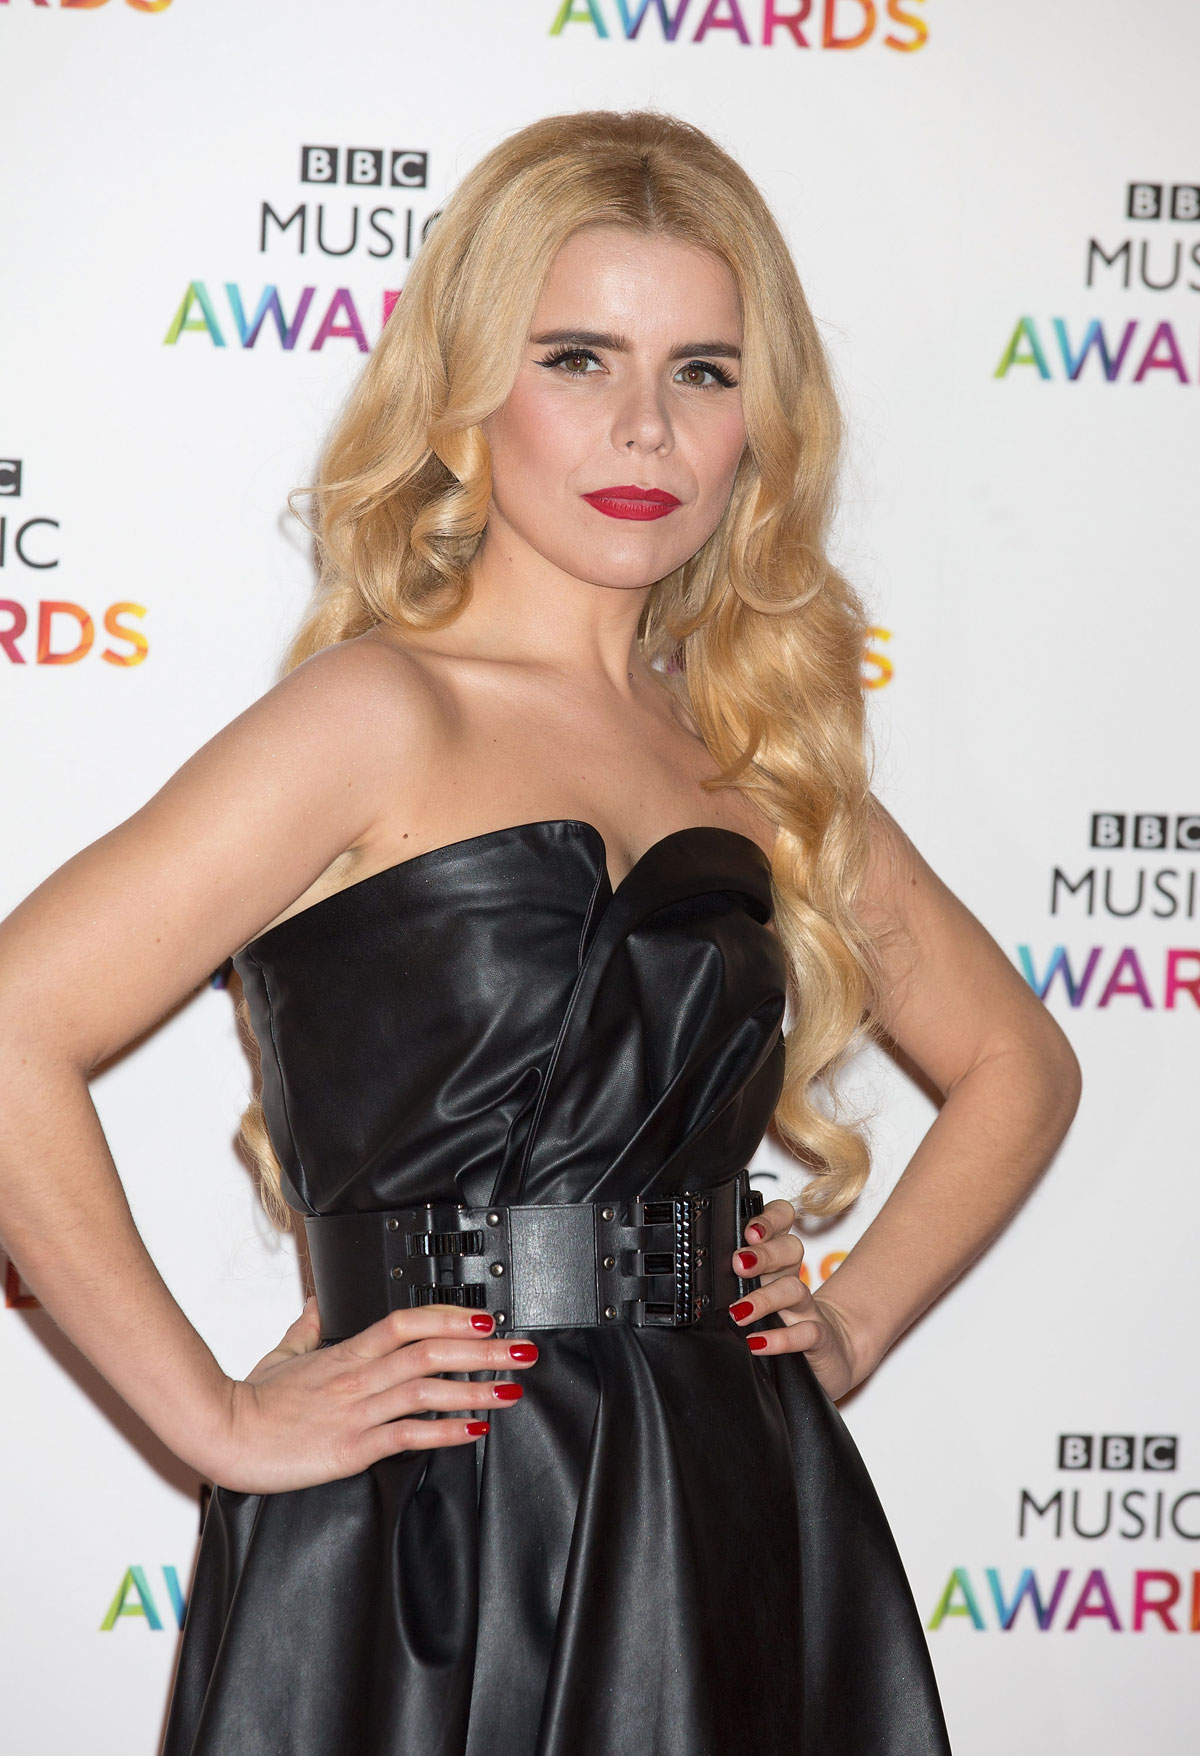 Paloma Faith attends BBC Music Awards at Earl's Court Exhibition Centre